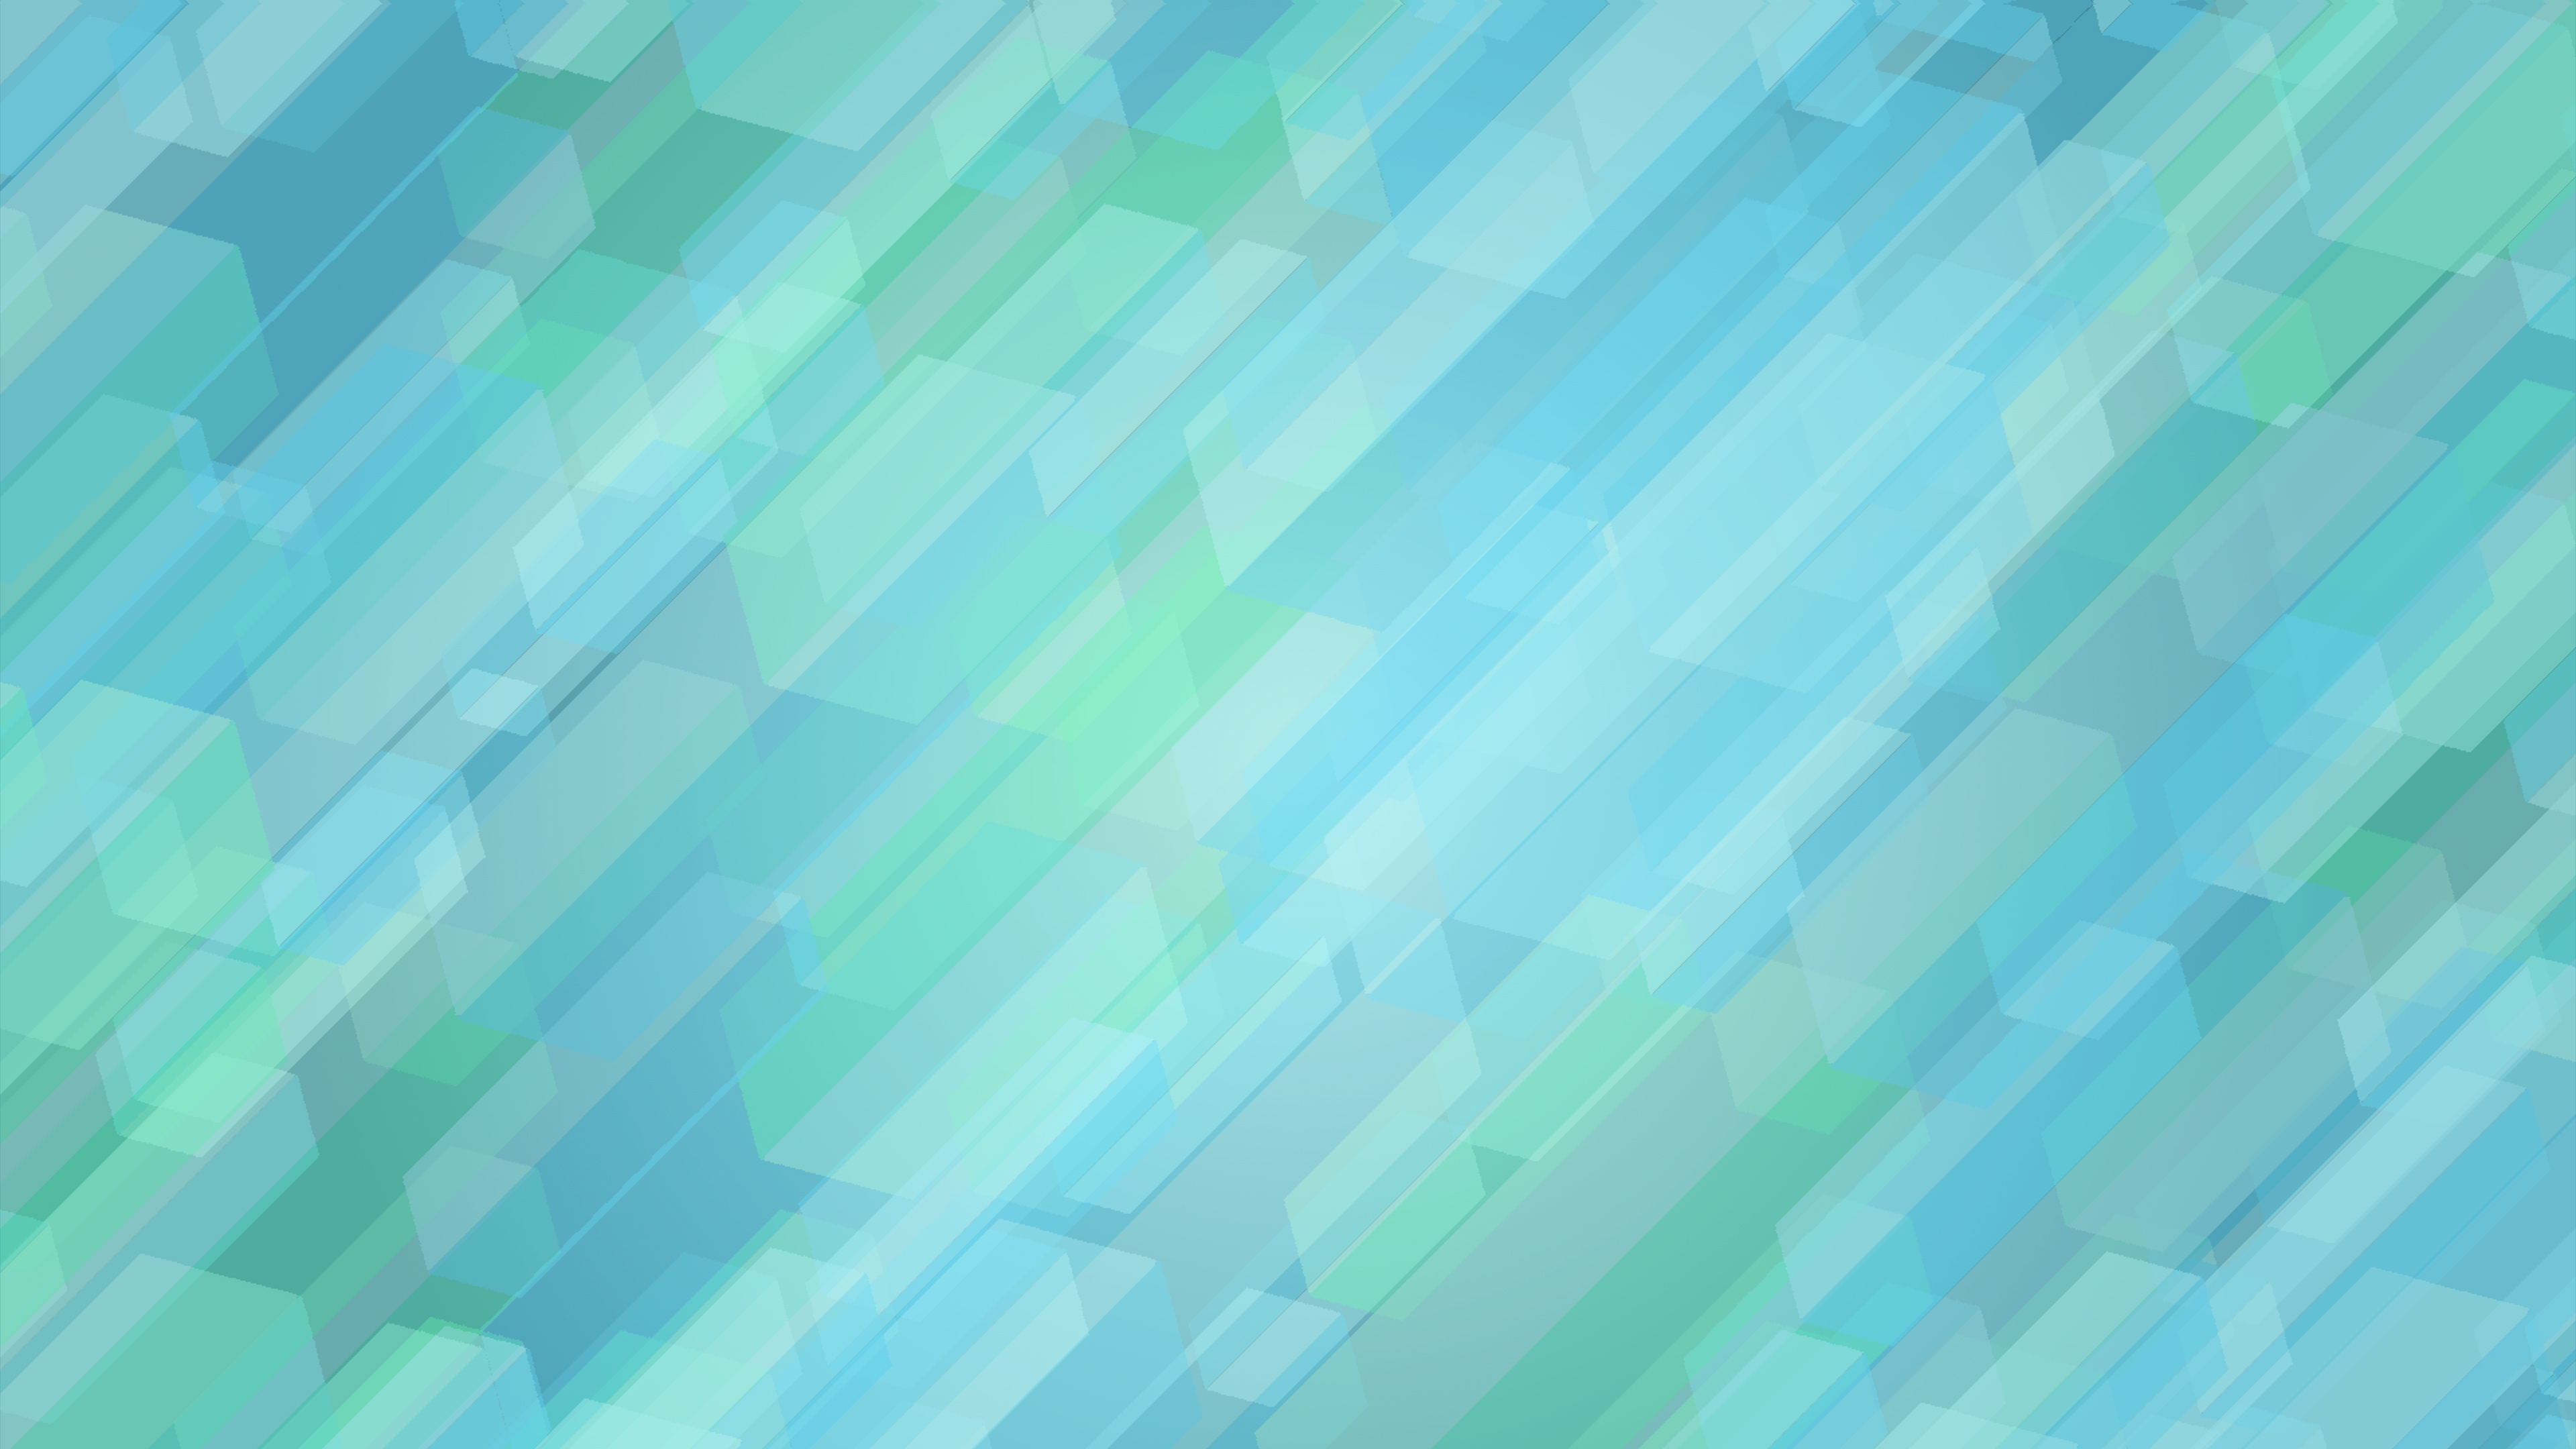 Texture Patterns 4k Hd Abstract 4k Wallpapers Images